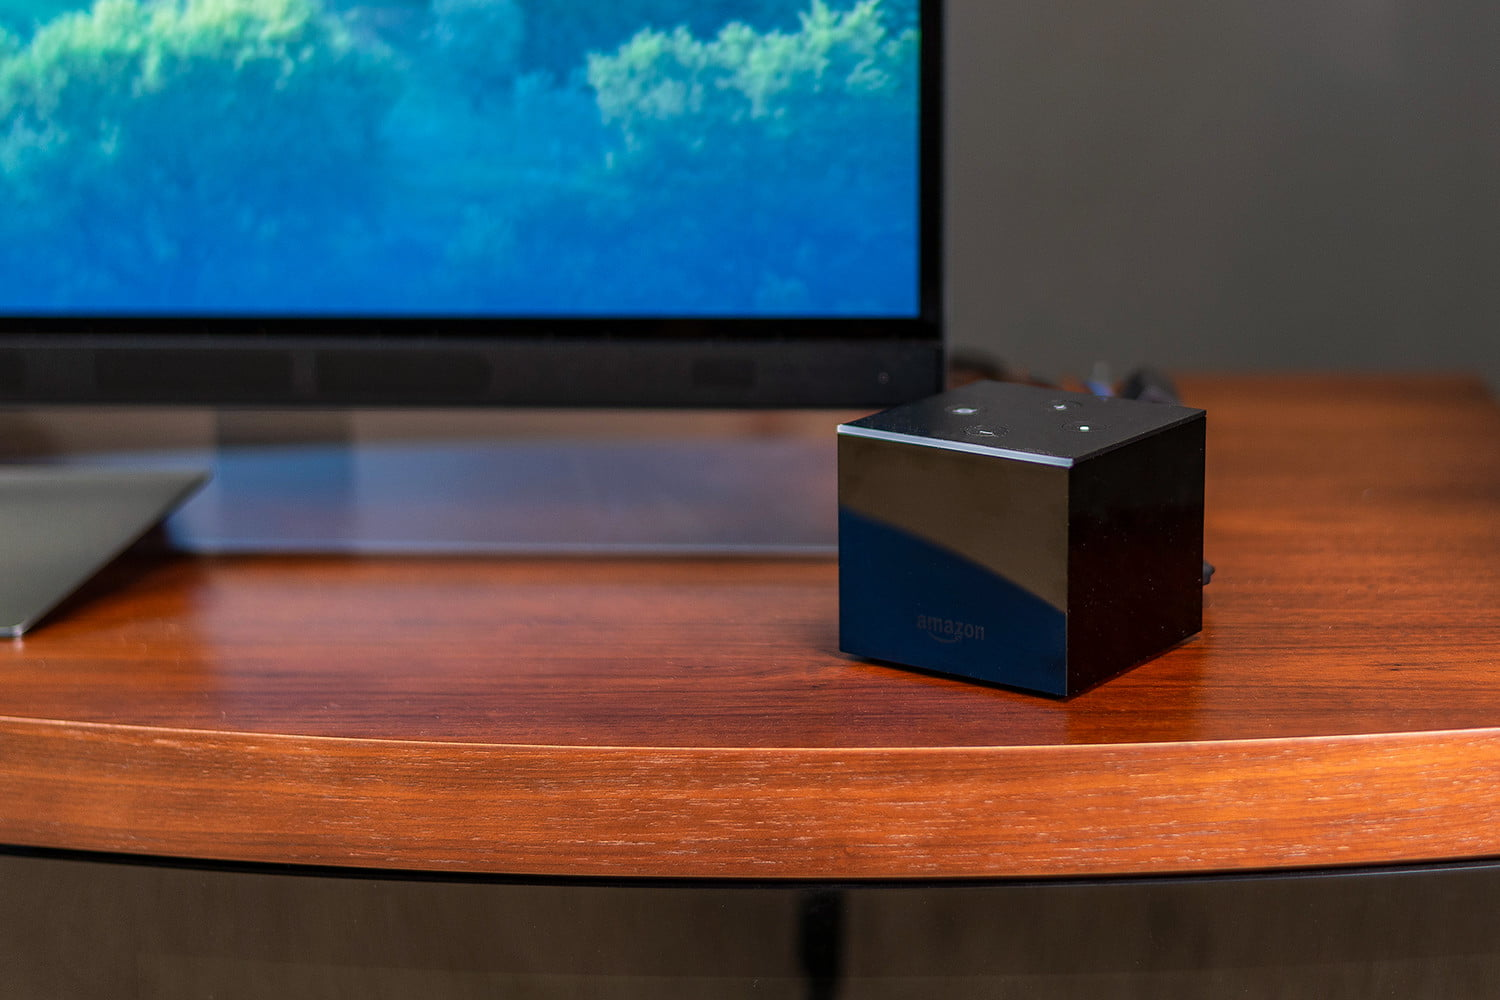 fire tv cube vs apple tv 4k